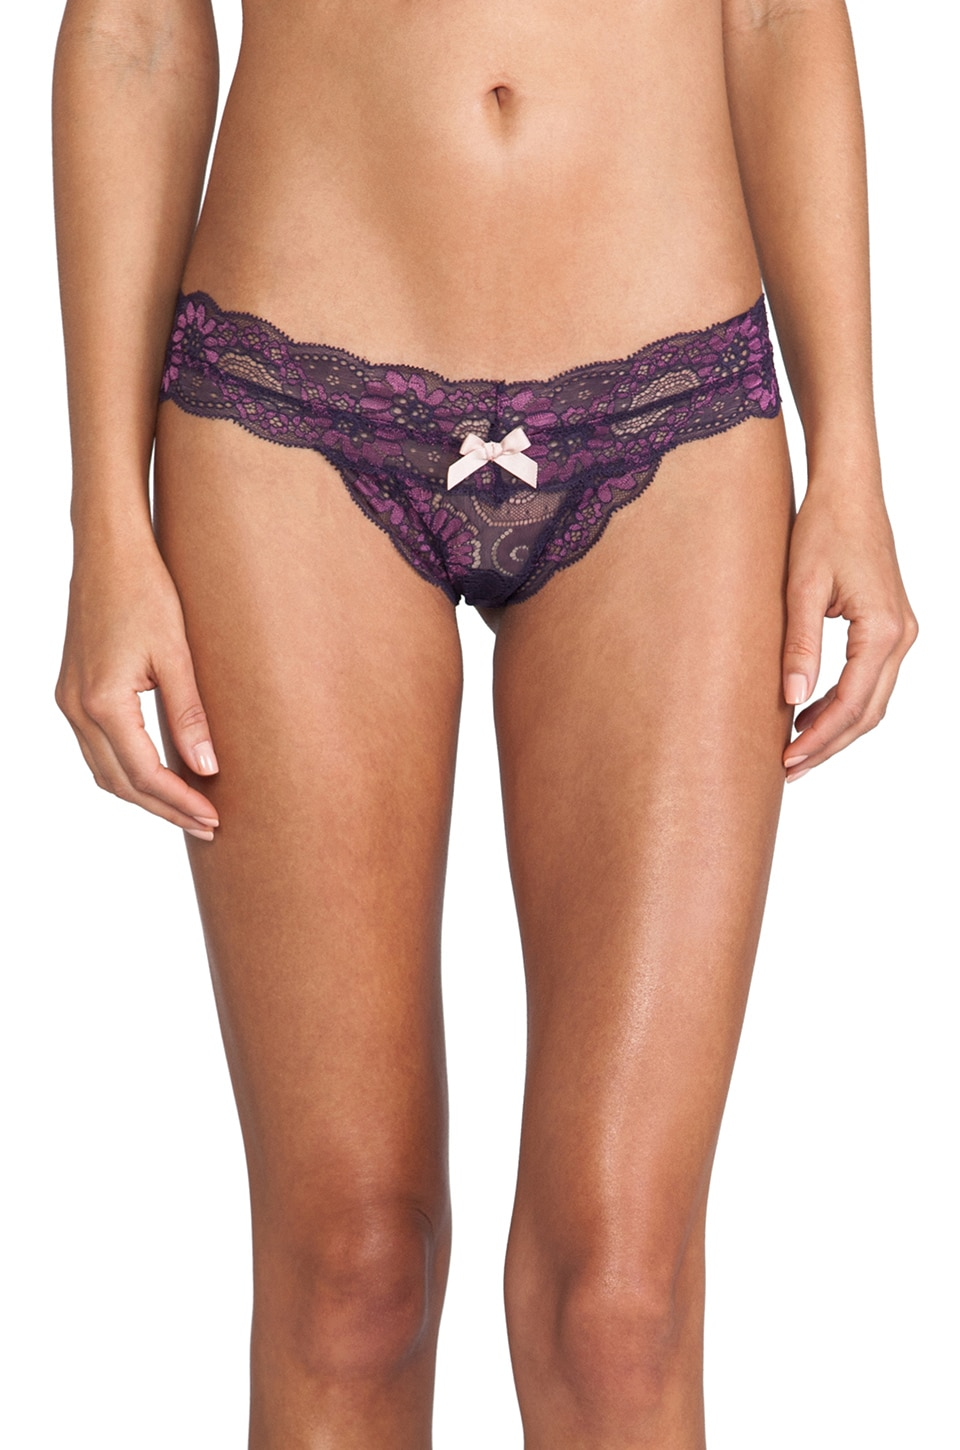 eberjey Daisy Thong in Grape/Jam